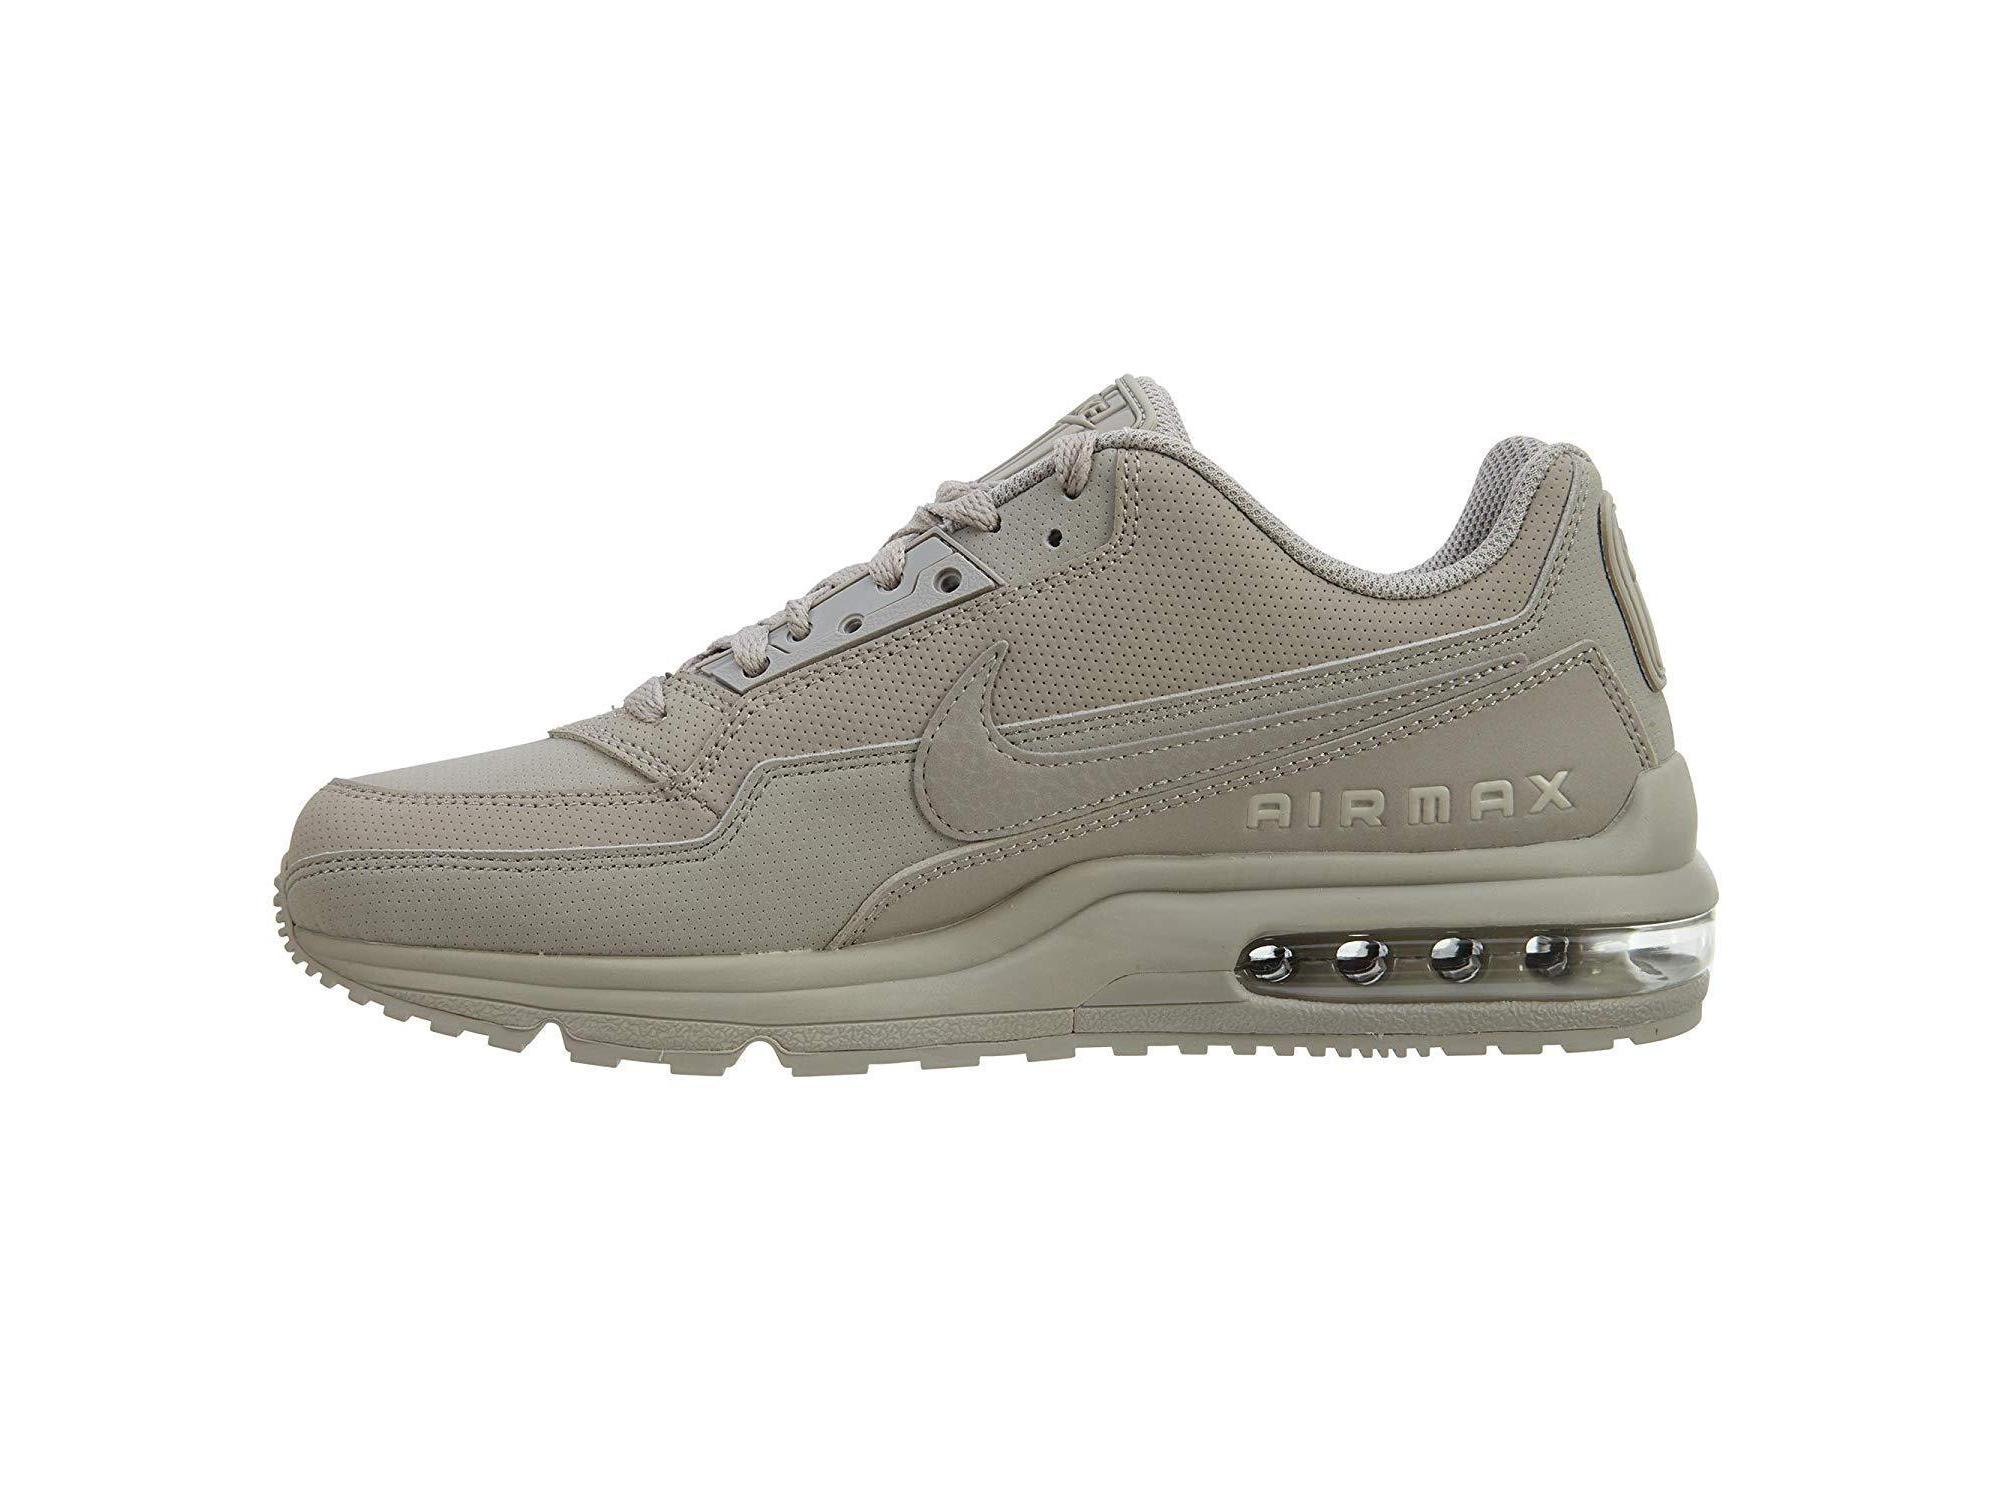 best sneakers 10fc8 e7515 Nike Mens Air Max ltd 3 Low Top Lace Up Running Sneaker